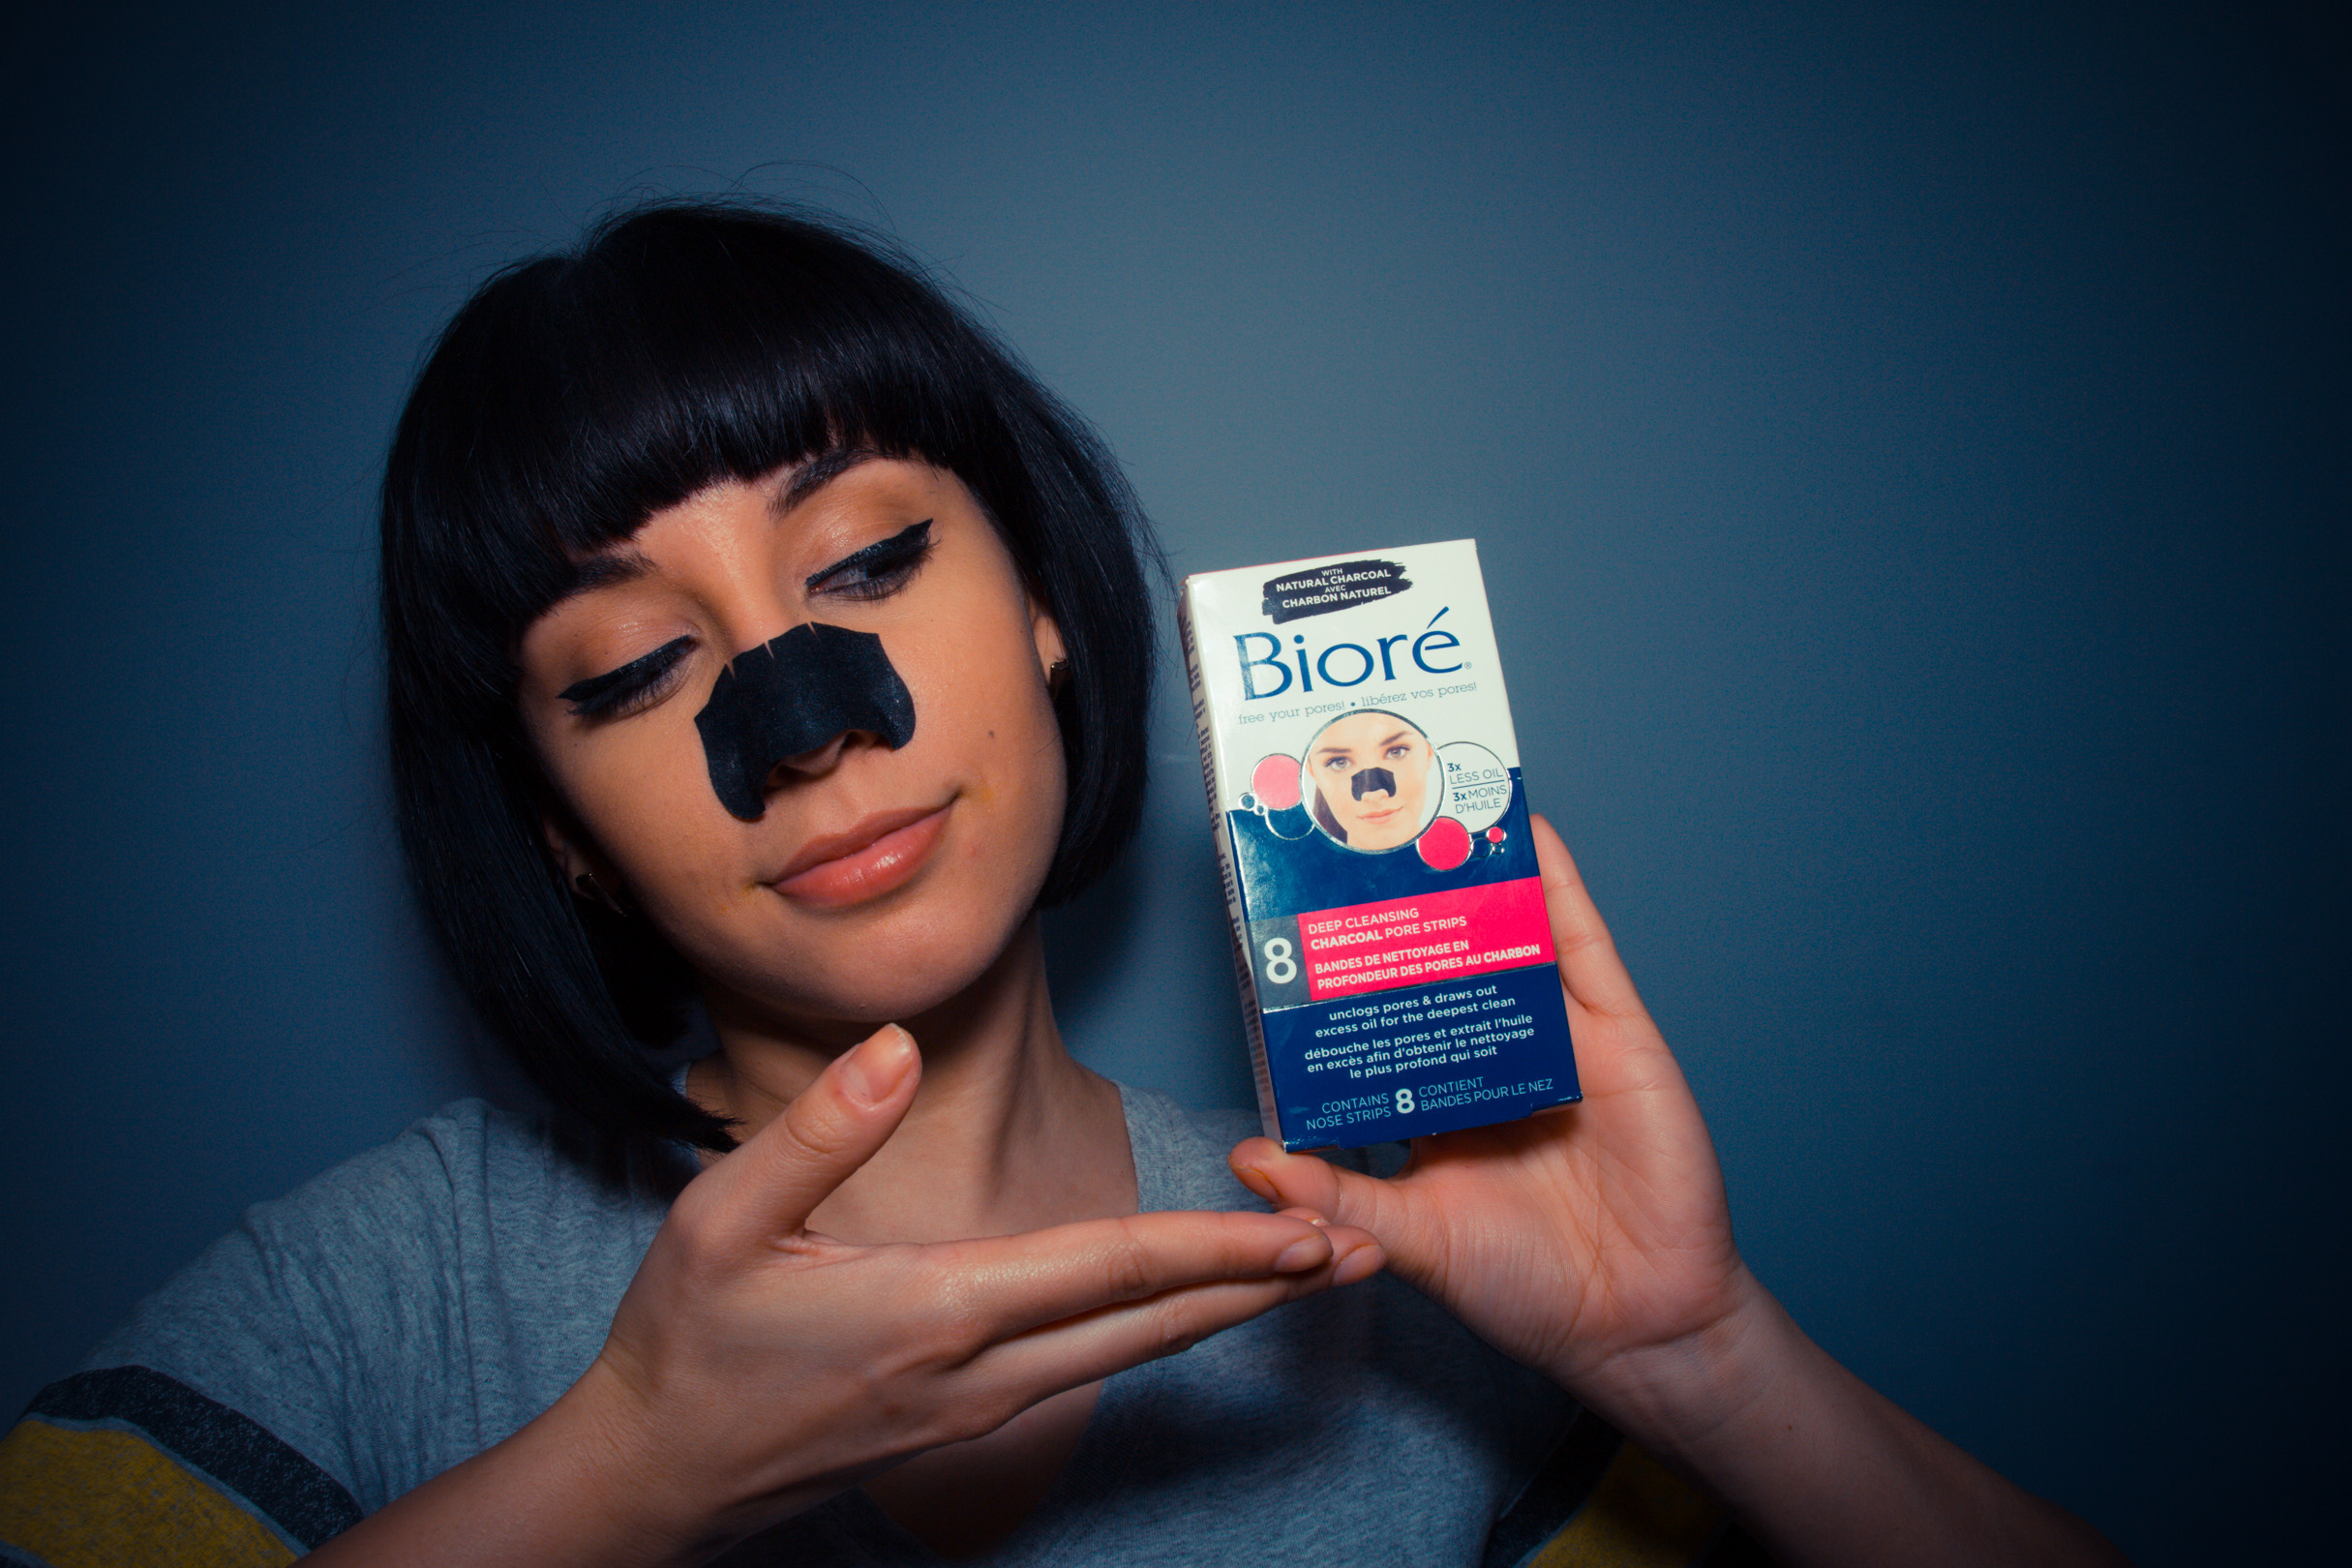 LET'S TALK BIORÉ CHARCOAL PORE STRIPS - The Girl With Bangs